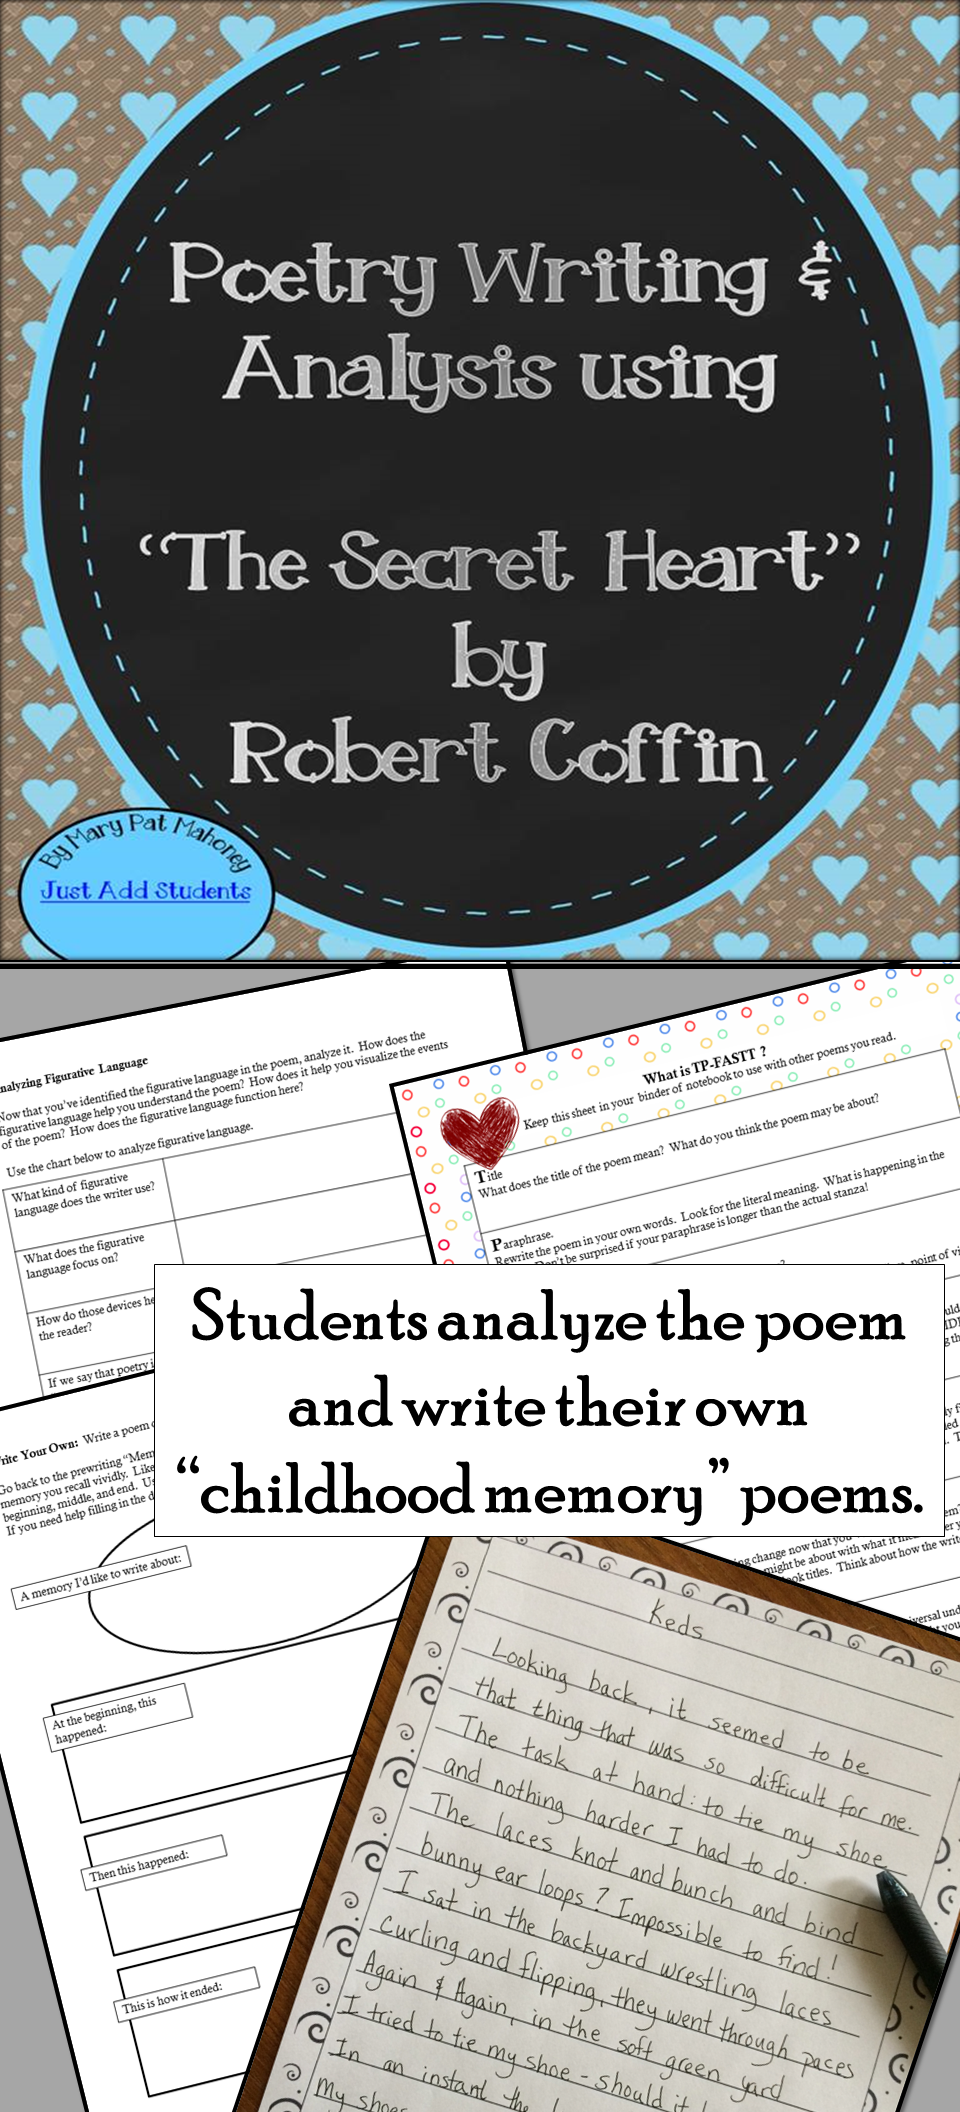 teaching creative writing middle school students Creative lesson strategies for teaching middle school  for middle school students, lectures or direct instruction should be kept short  another activity could .